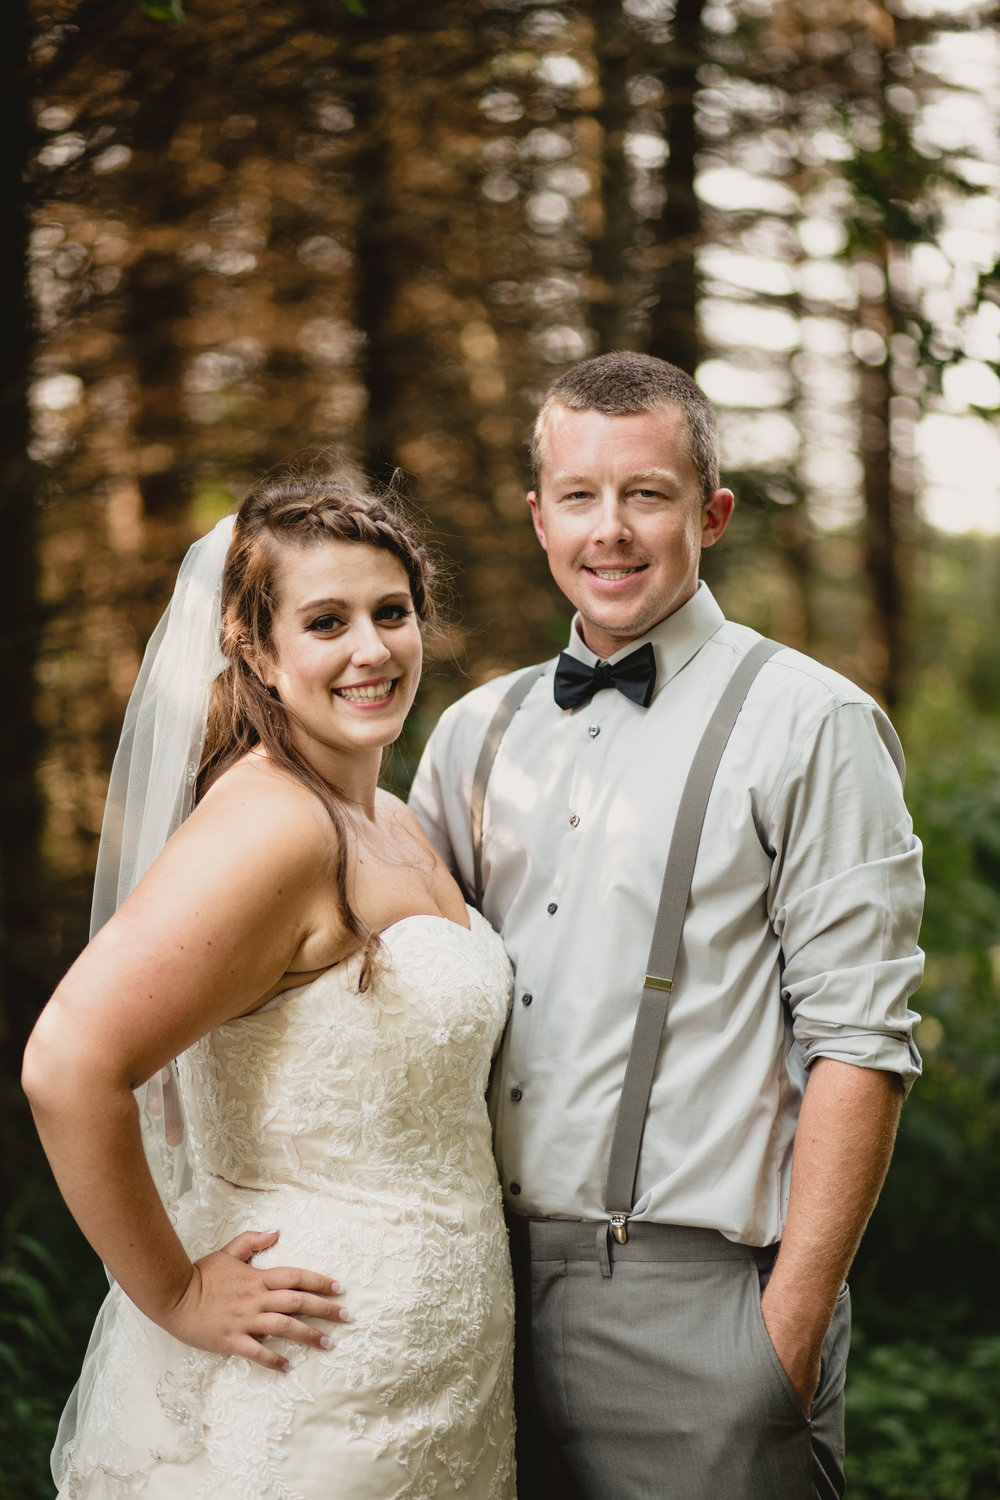 west-michigan-wedding-photographer-ludington-mi-trillium-creek-jaclyn-russ-236.jpg